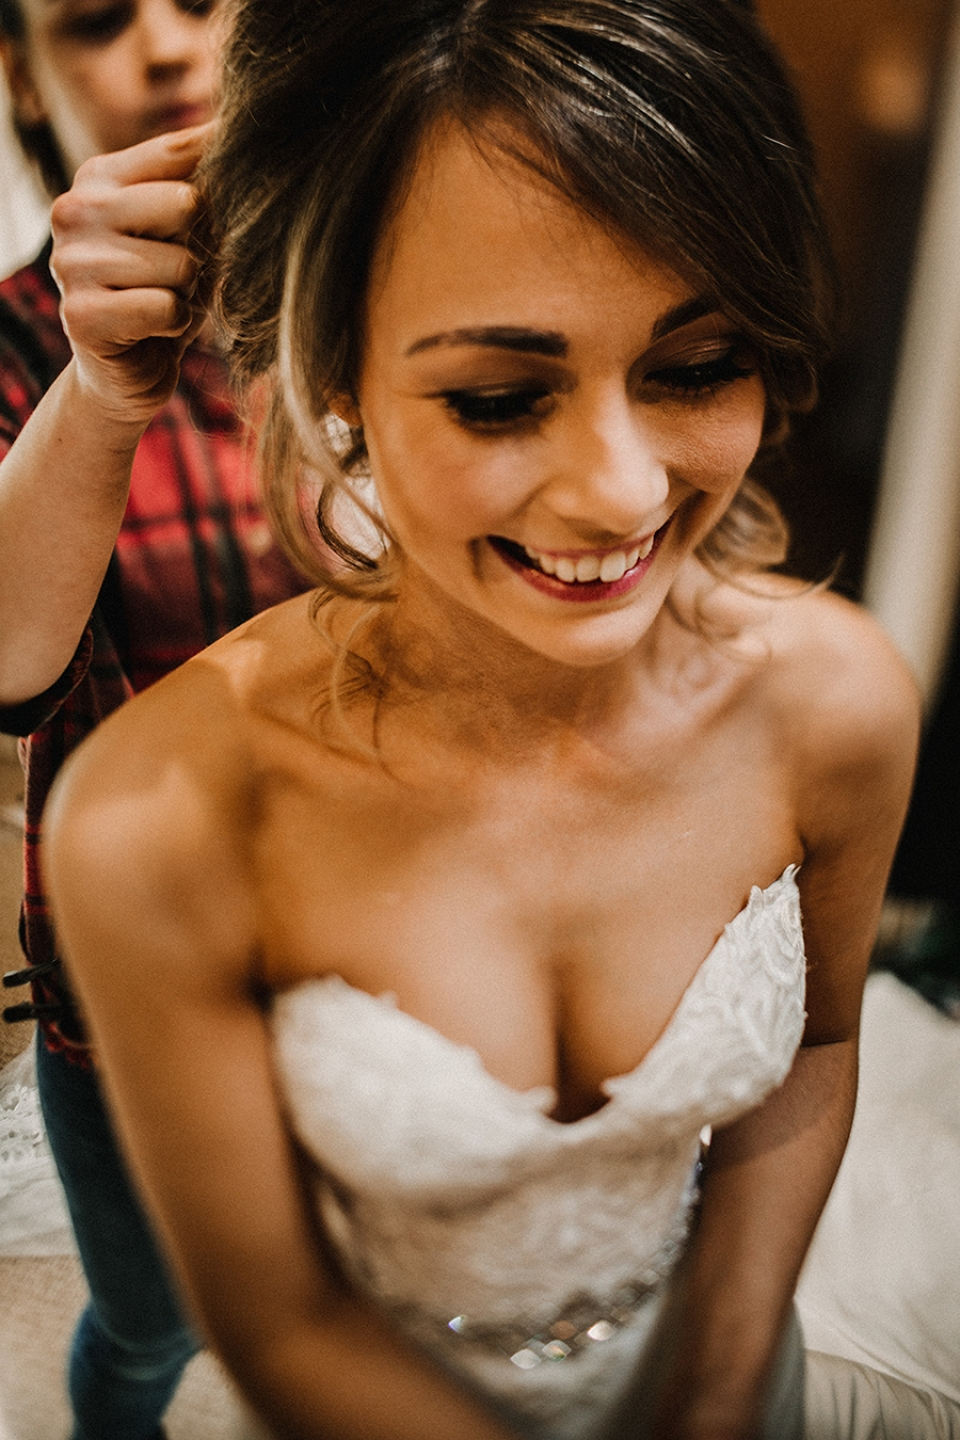 bride getting into her dress at bridal prep